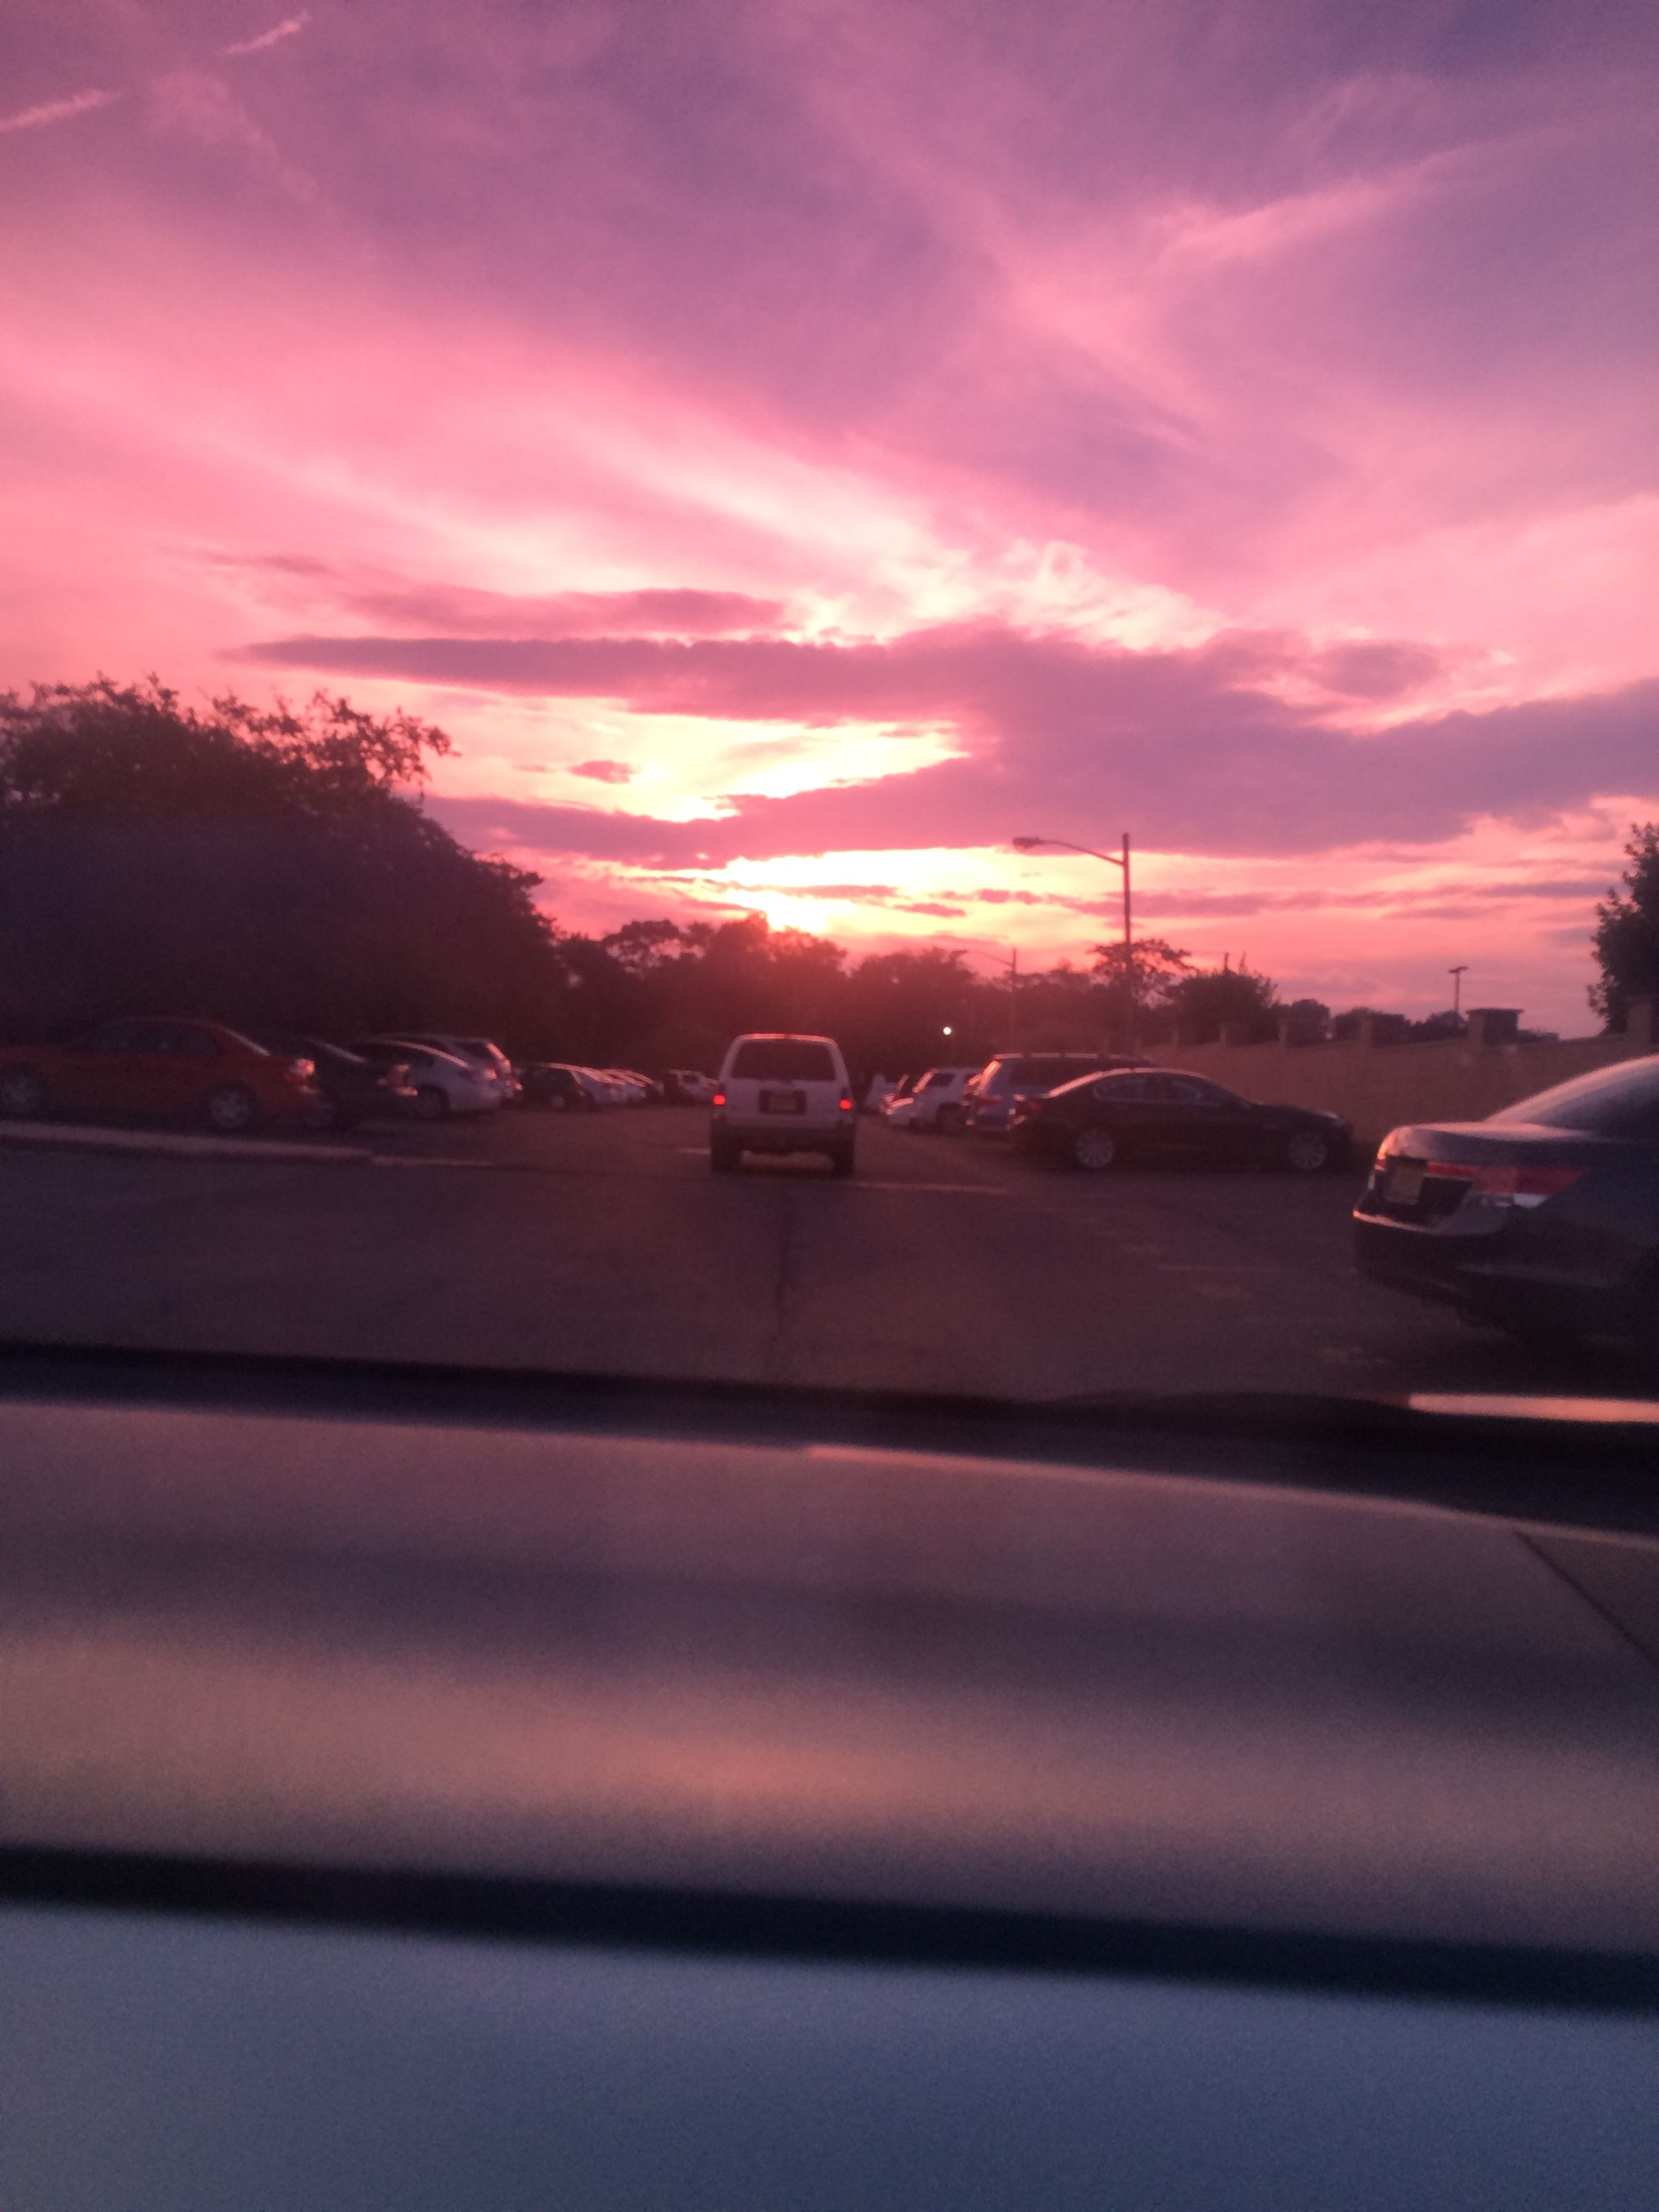 Took this myself on the way back from the pool